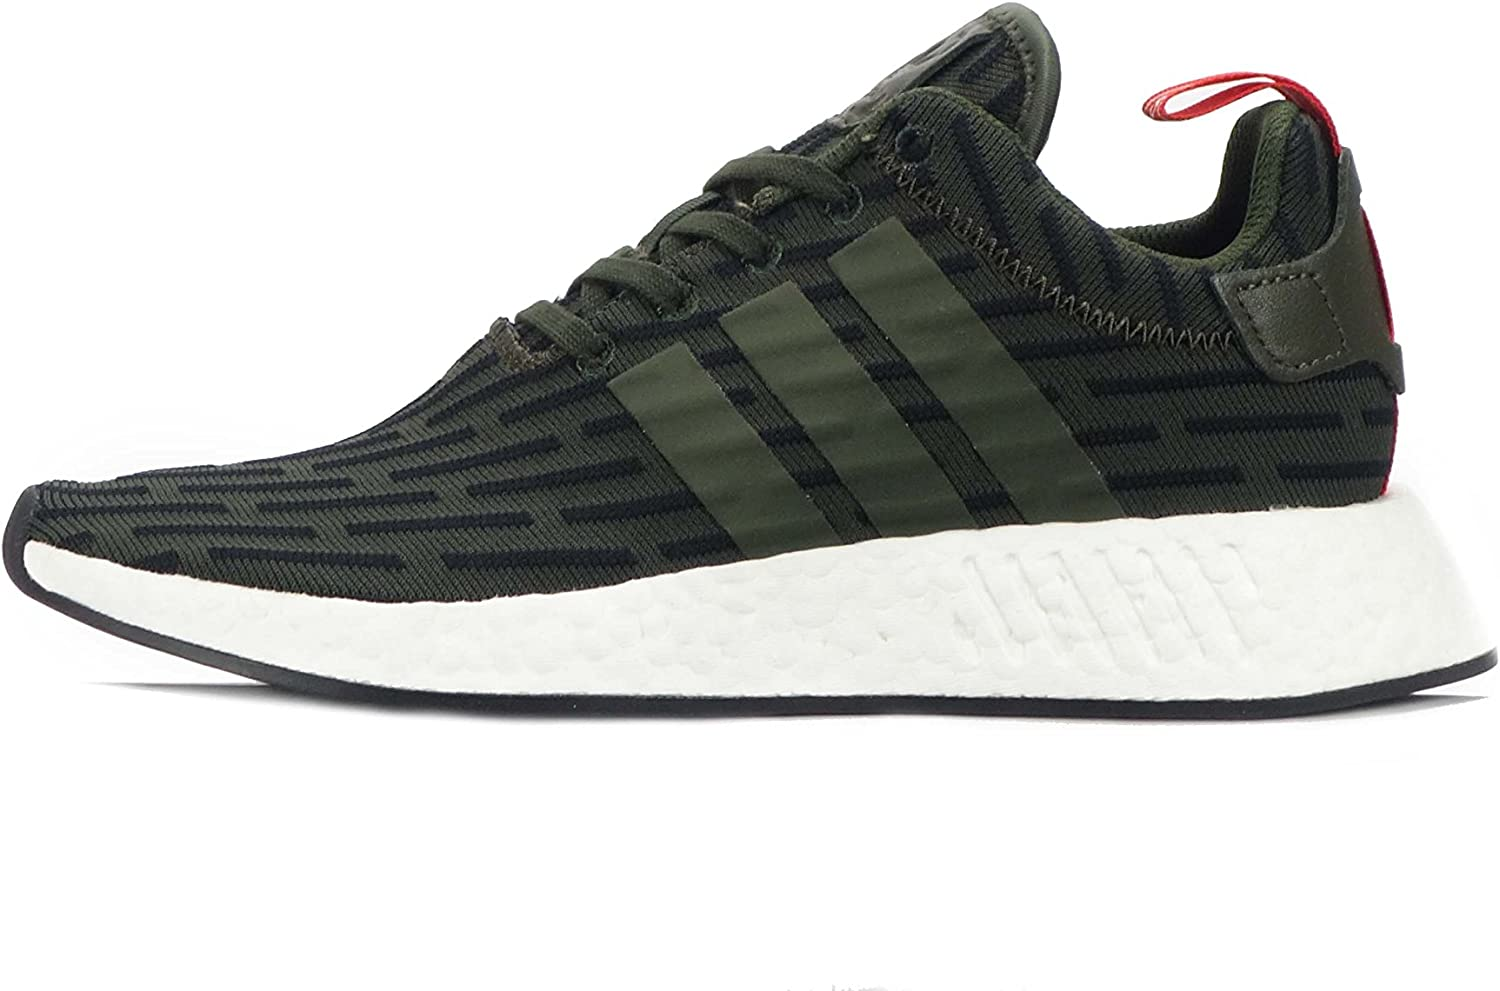 adidas Originals NMD_R2 Mens Trainers UK Super beauty product restock lowest price quality top Sneakers Running